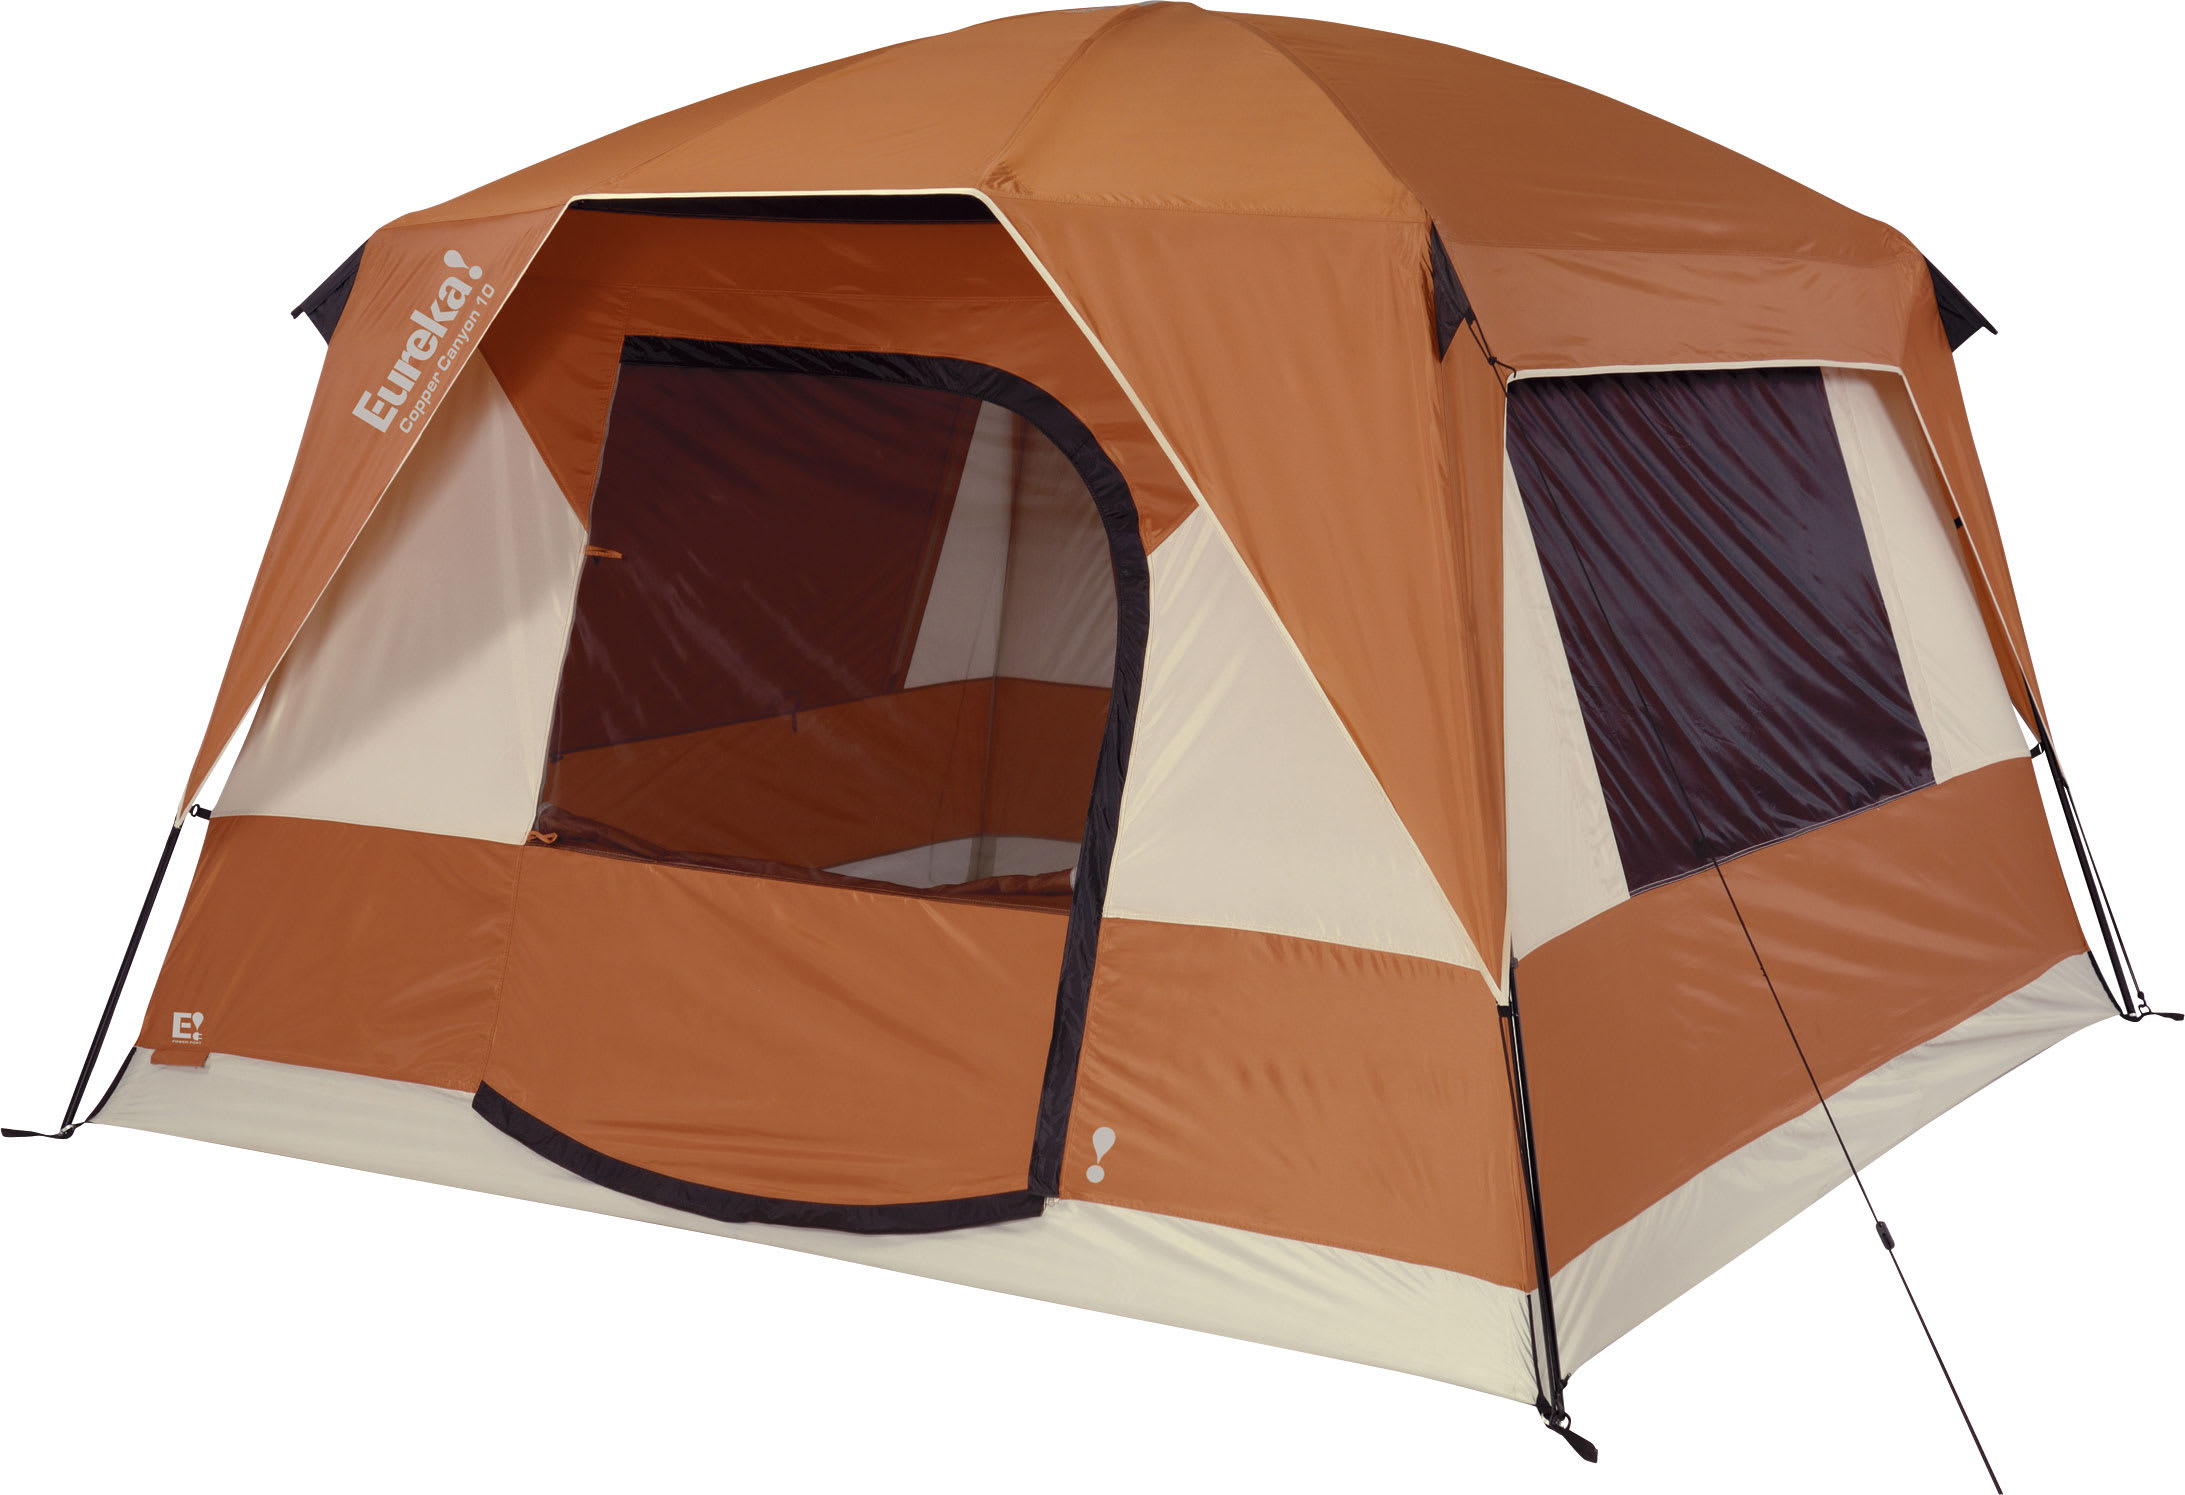 Eureka Copper Canyon 10 5-Person Tent - thumbnail 1  sc 1 st  The House & On Sale Eureka Copper Canyon 10 5-Person Tent up to 70% off